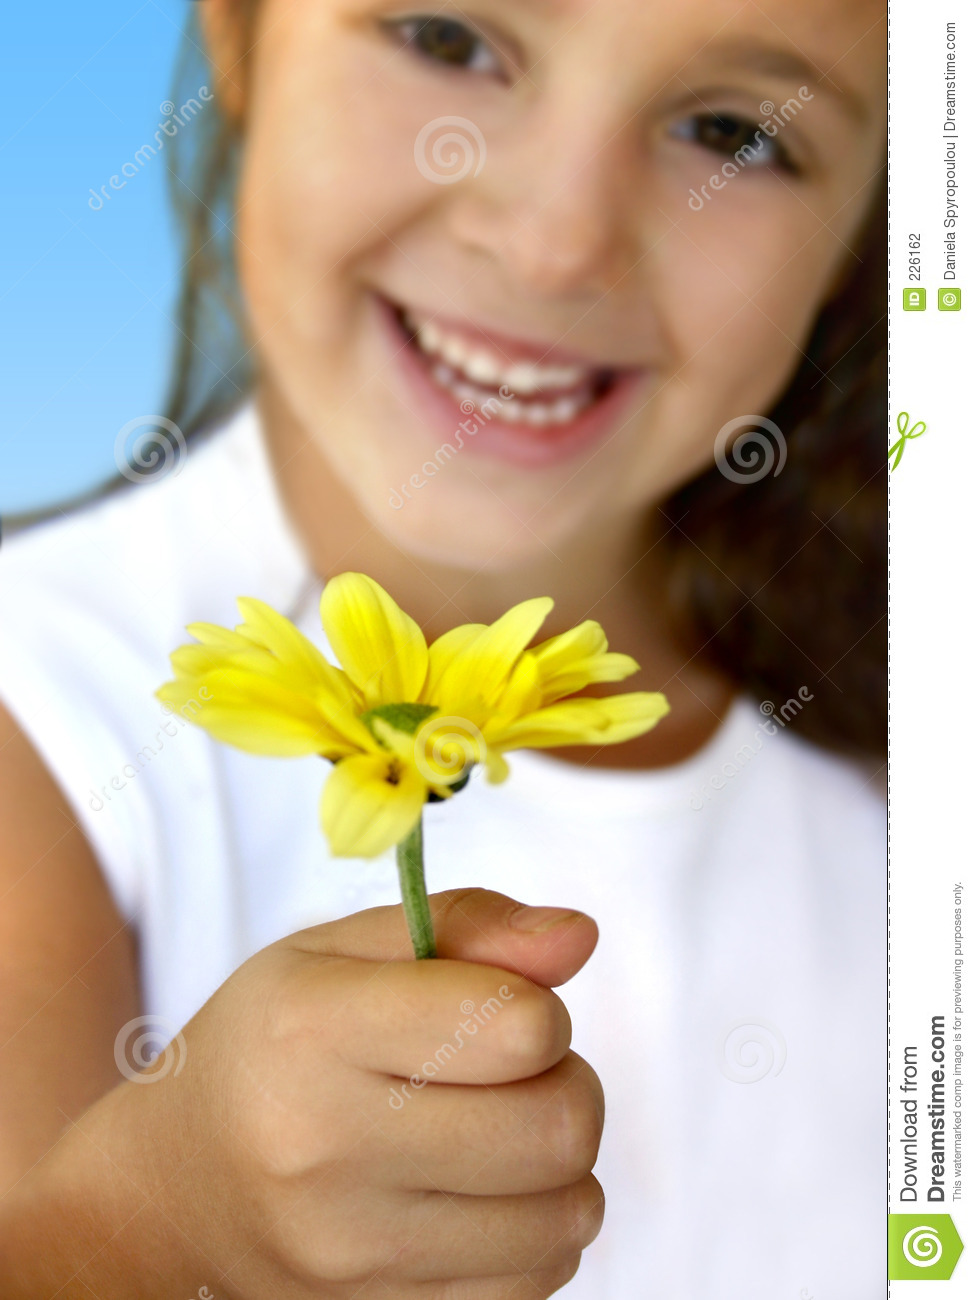 GIRL WITH YELLOW DAISY